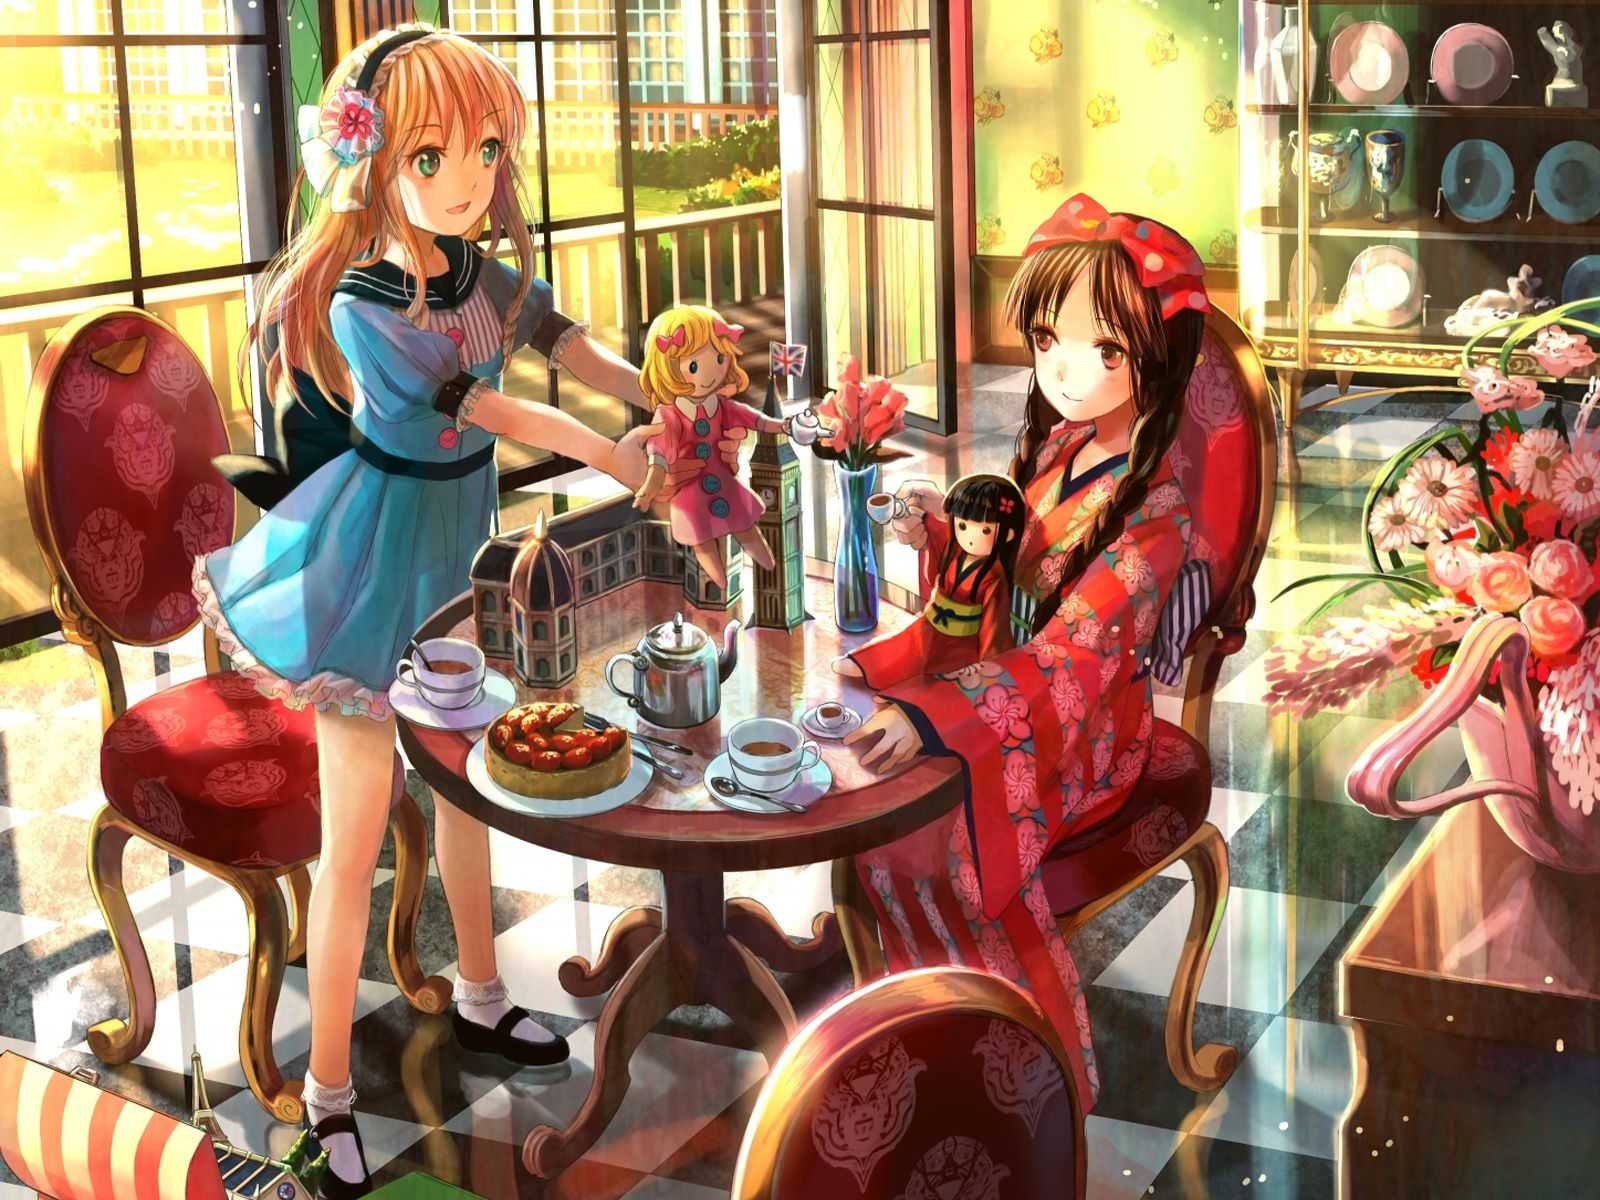 Anime Drinking Tea In A Traditional Way